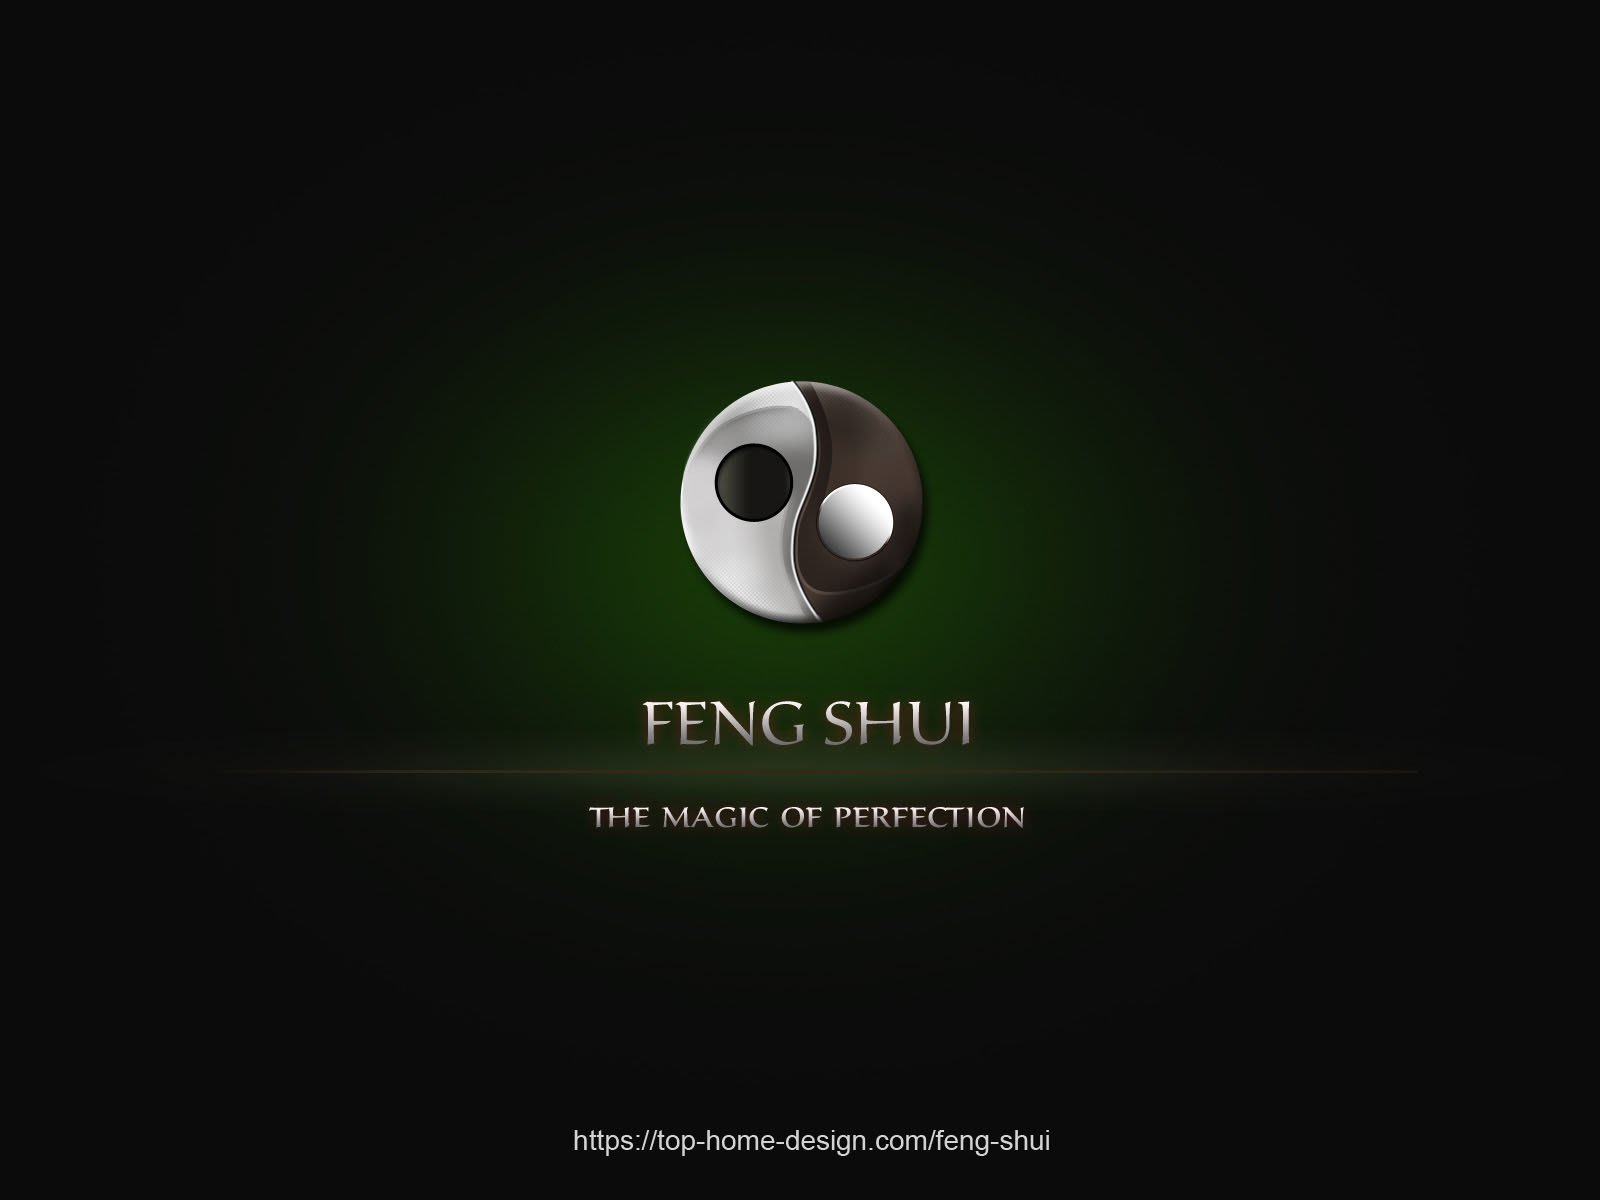 feng-shui the qi of perfection